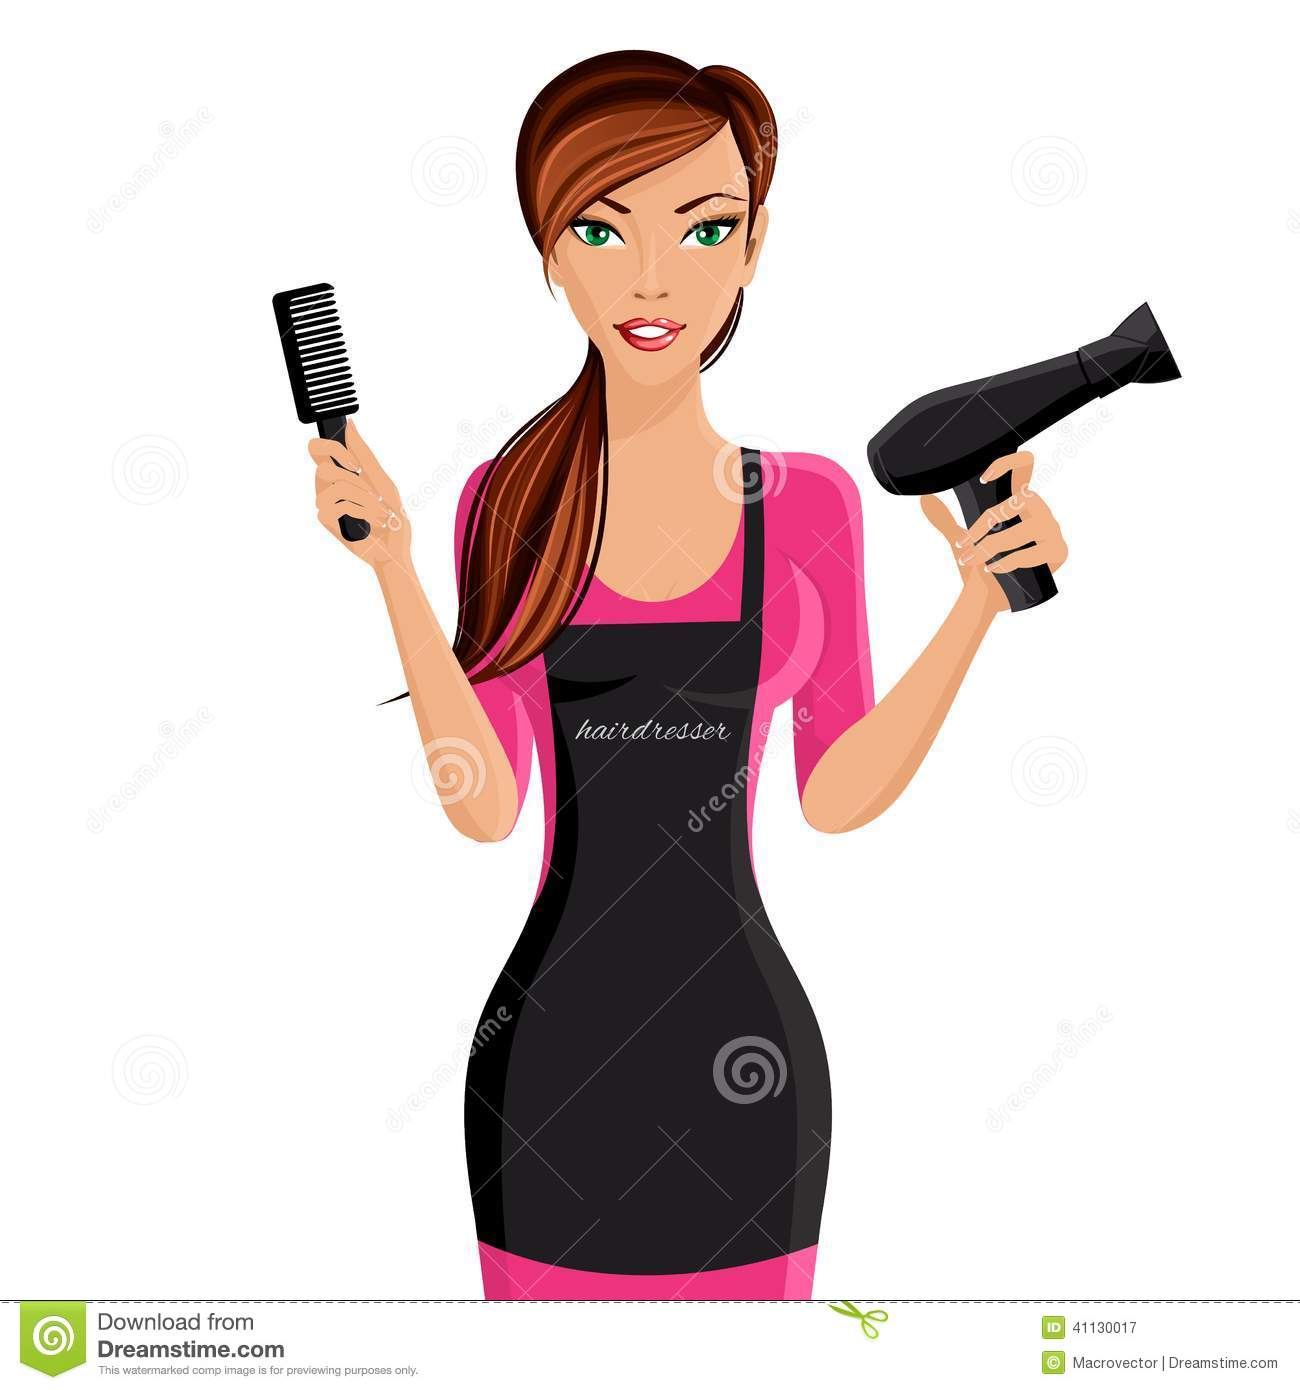 Hairdresser portrait stock vector. Woman clipart barber vector library download